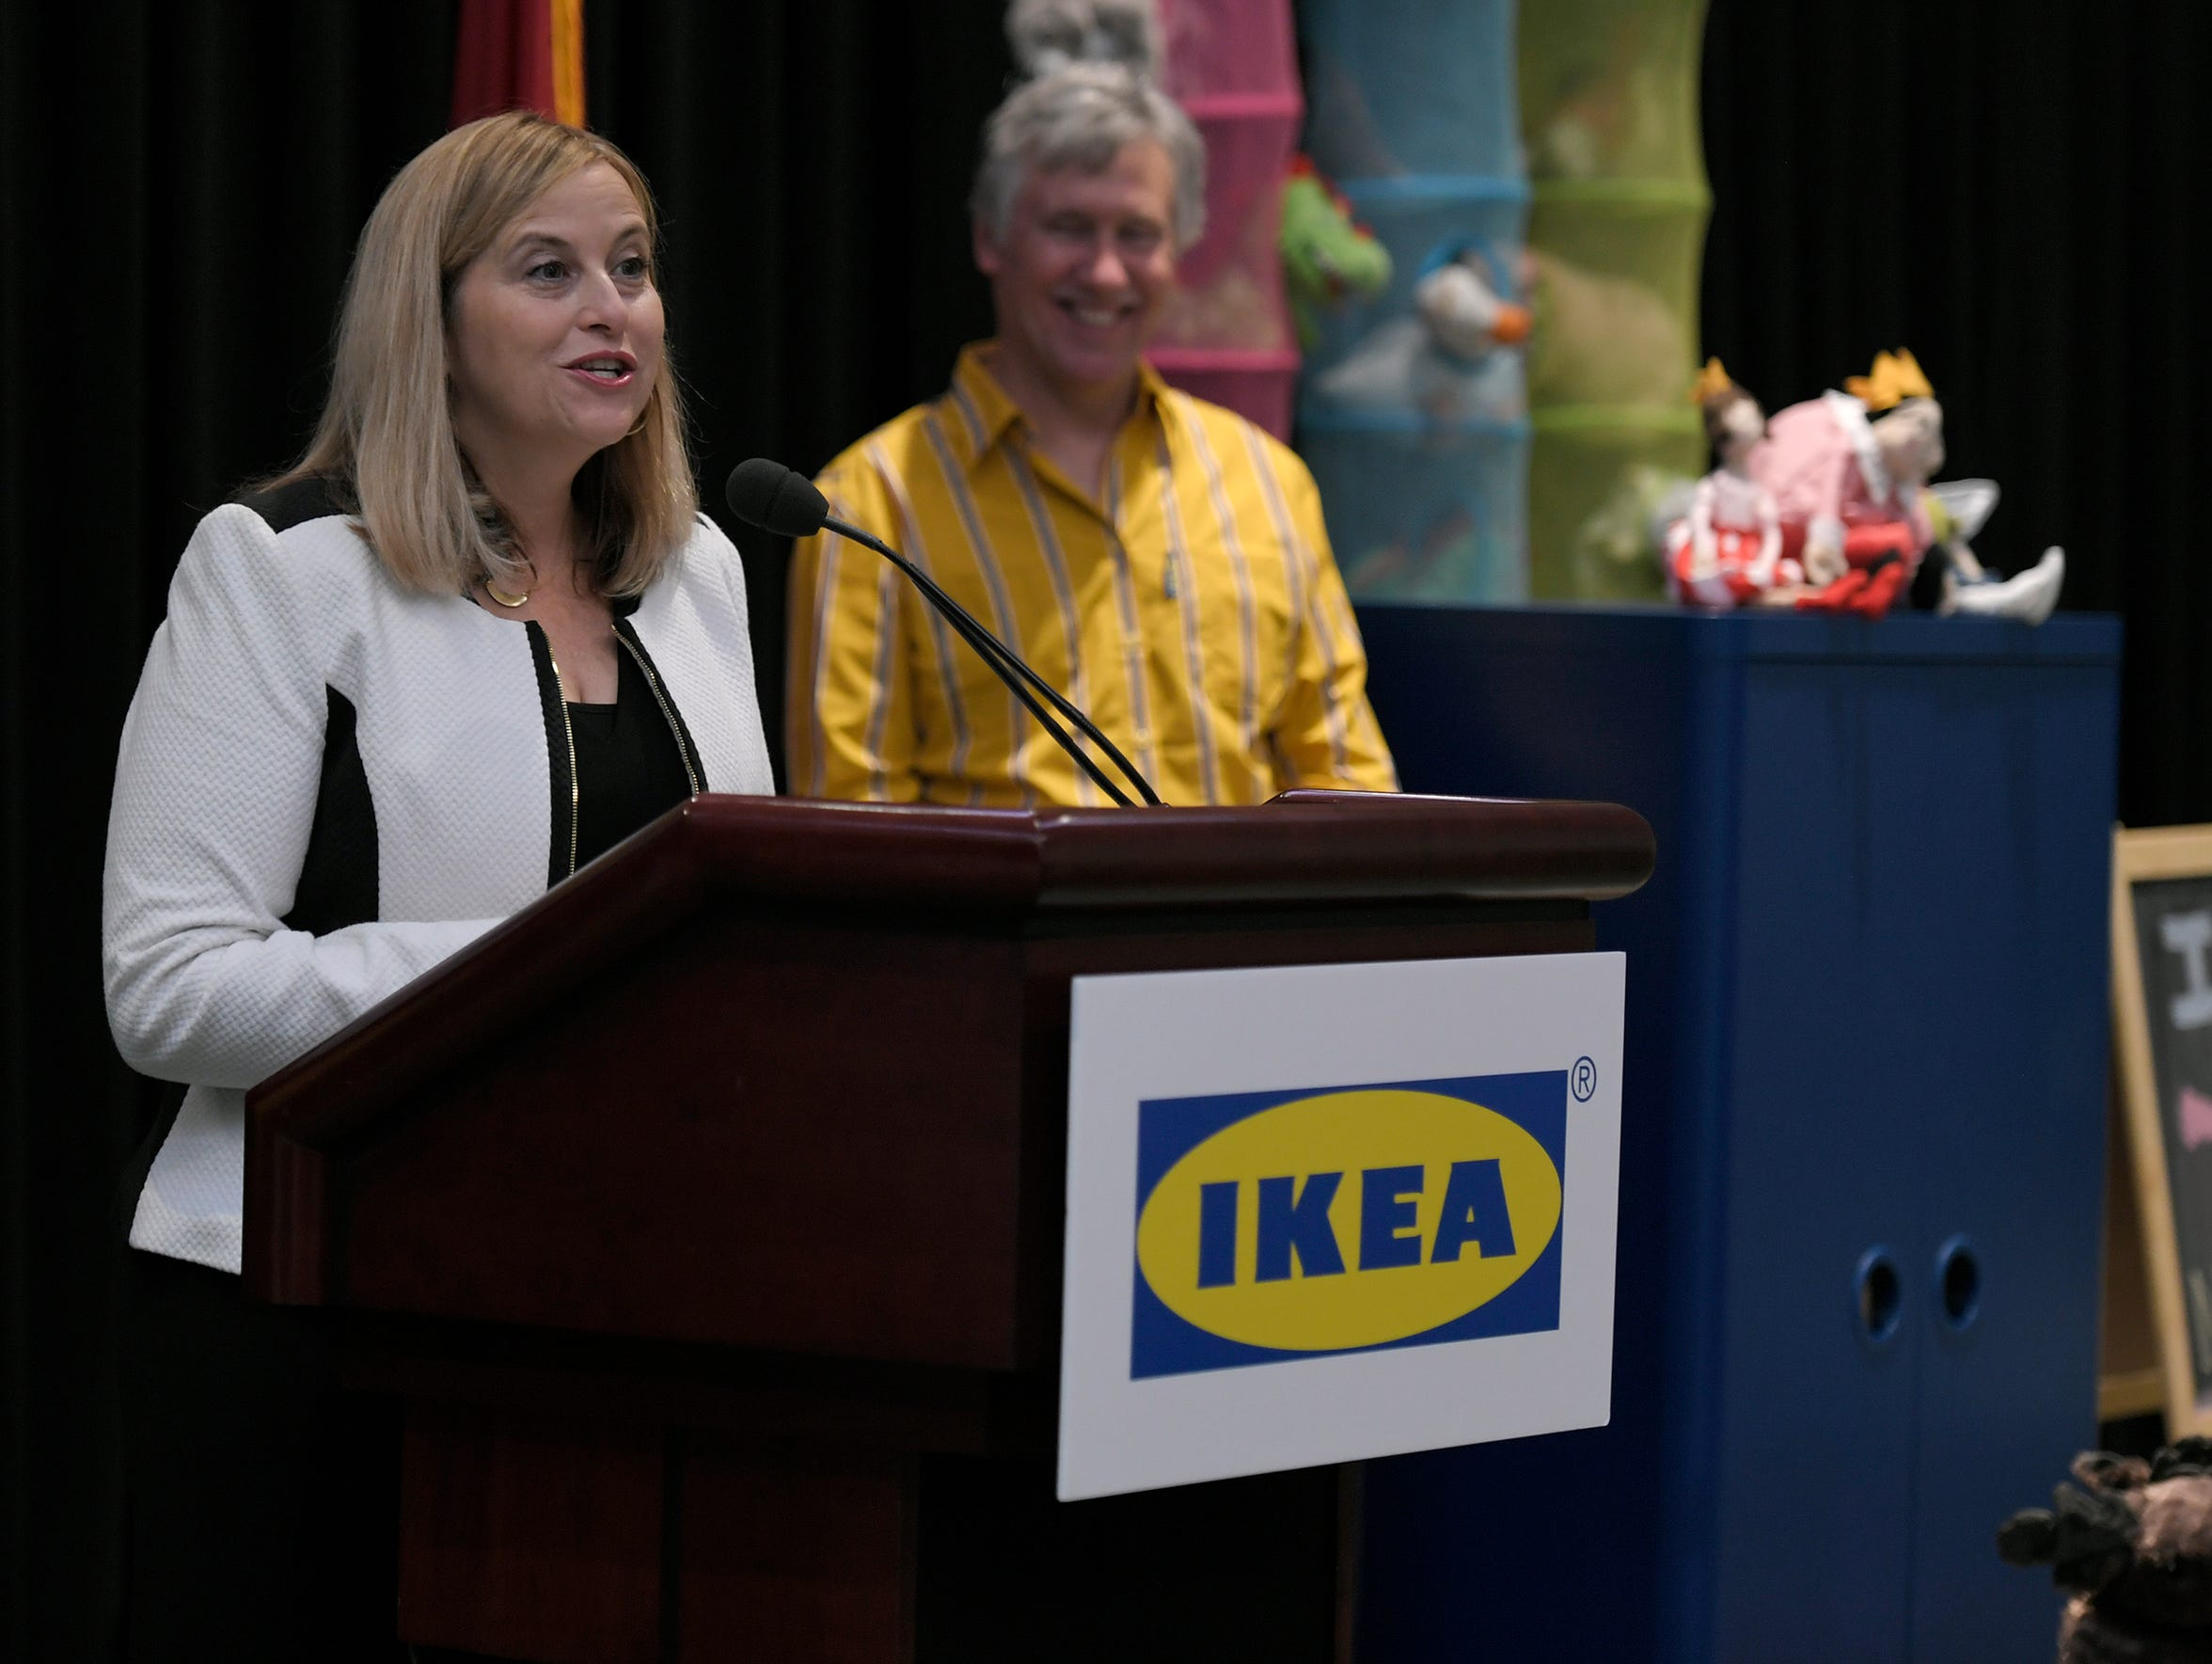 Nashville Mayor Megan Barry helps announce that Ikea